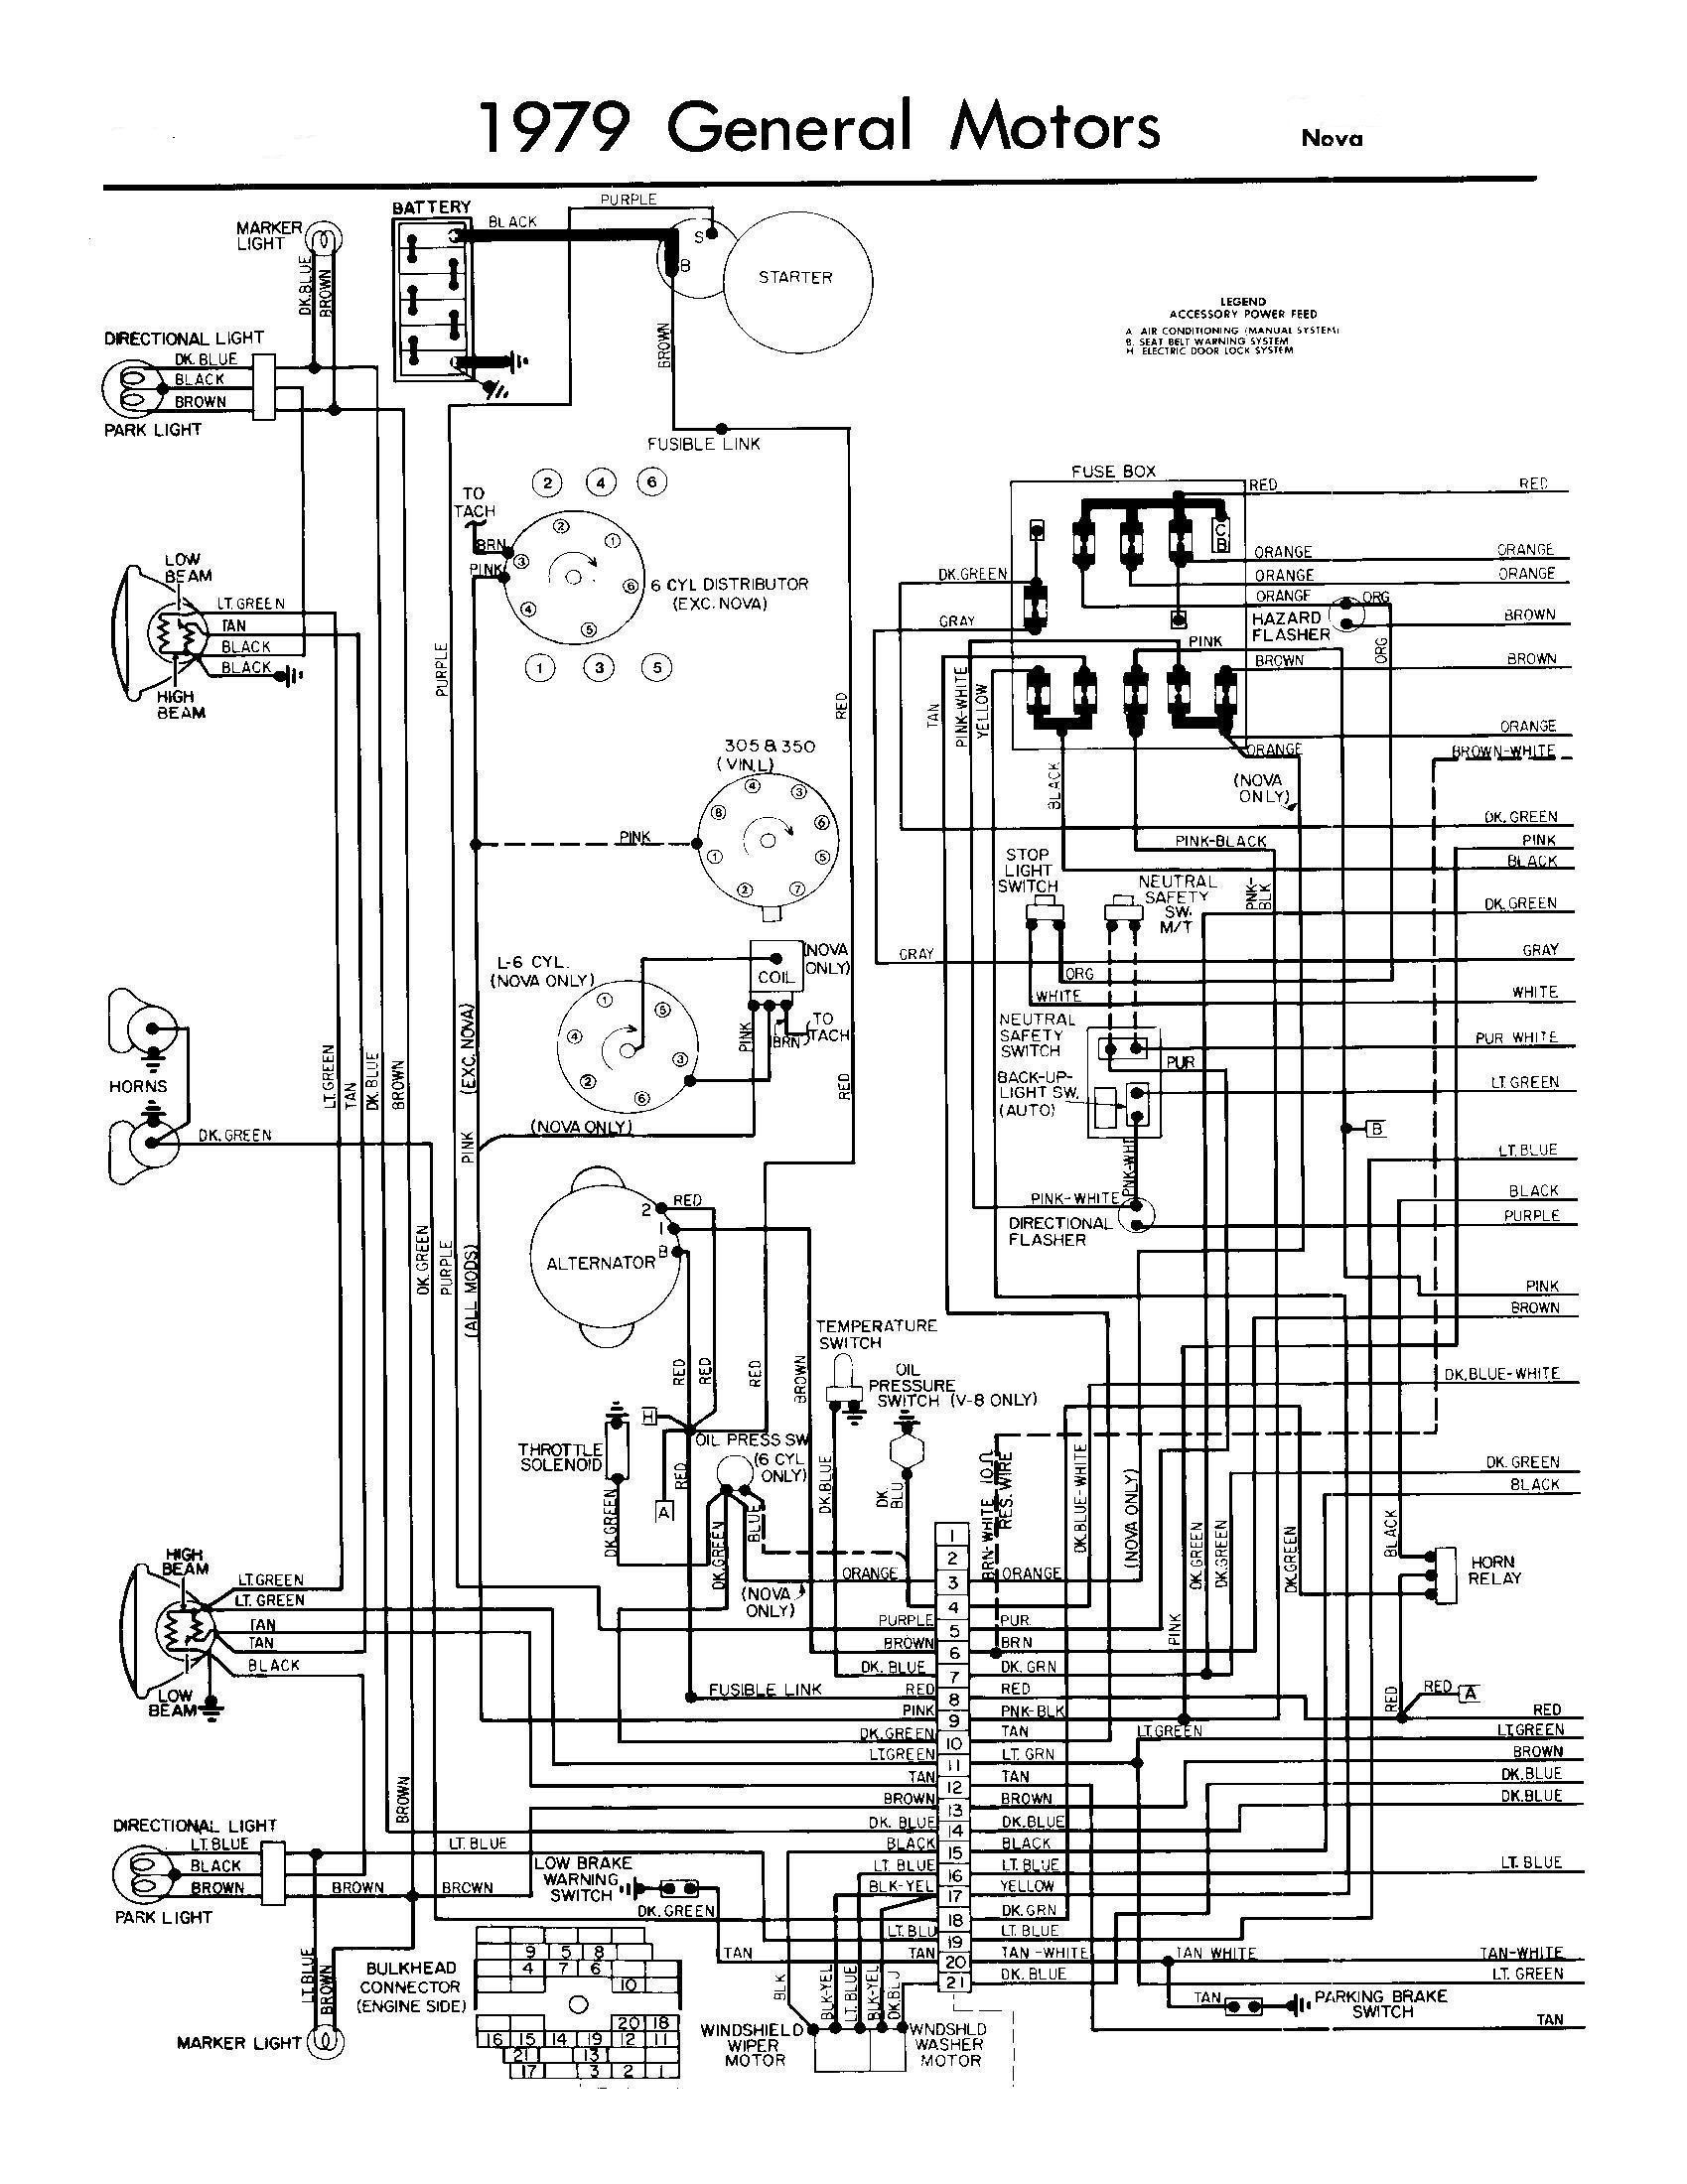 1975 Chevy Suburban Wiring Diagram Schematic. 1975 Chevy Silverado Wiring Diagram Database U2022 Rh Wiringme Today 98 Camaro 1999. Chevrolet. 1978 Chevy Scottsdale Wiring Diagram At Scoala.co